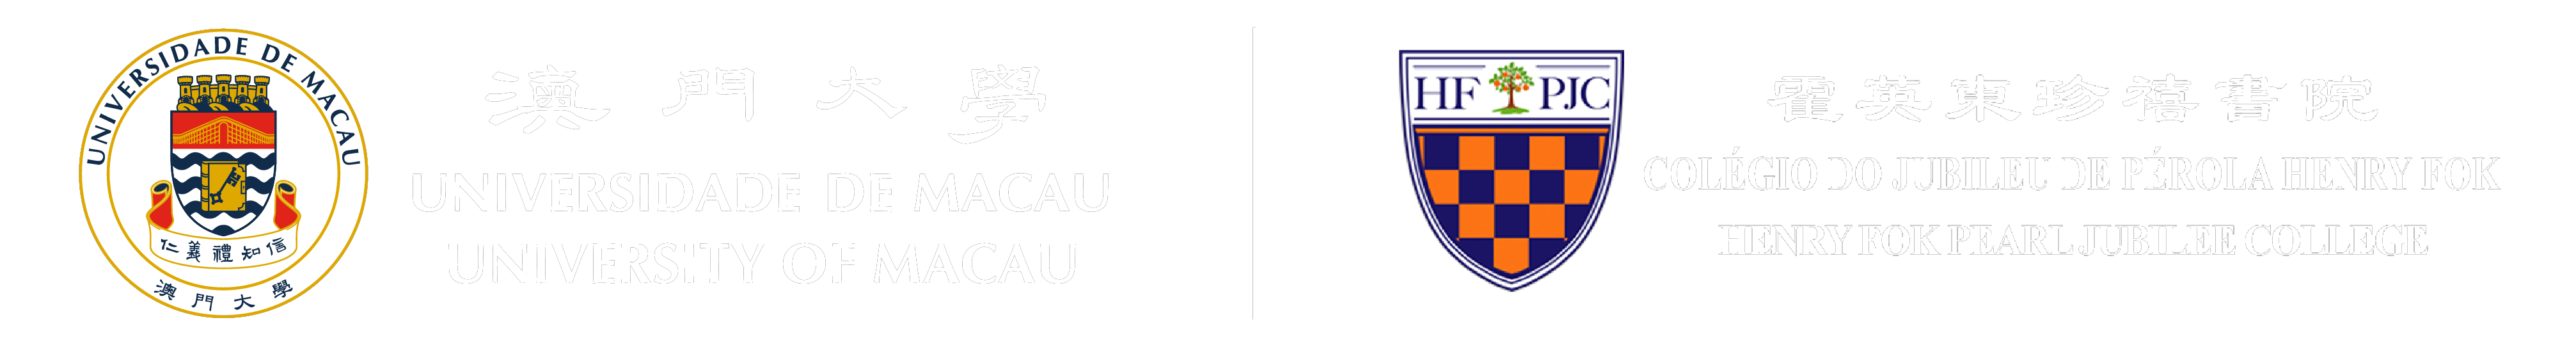 Henry Fok Pearl Jubilee College | University of Macau Logo